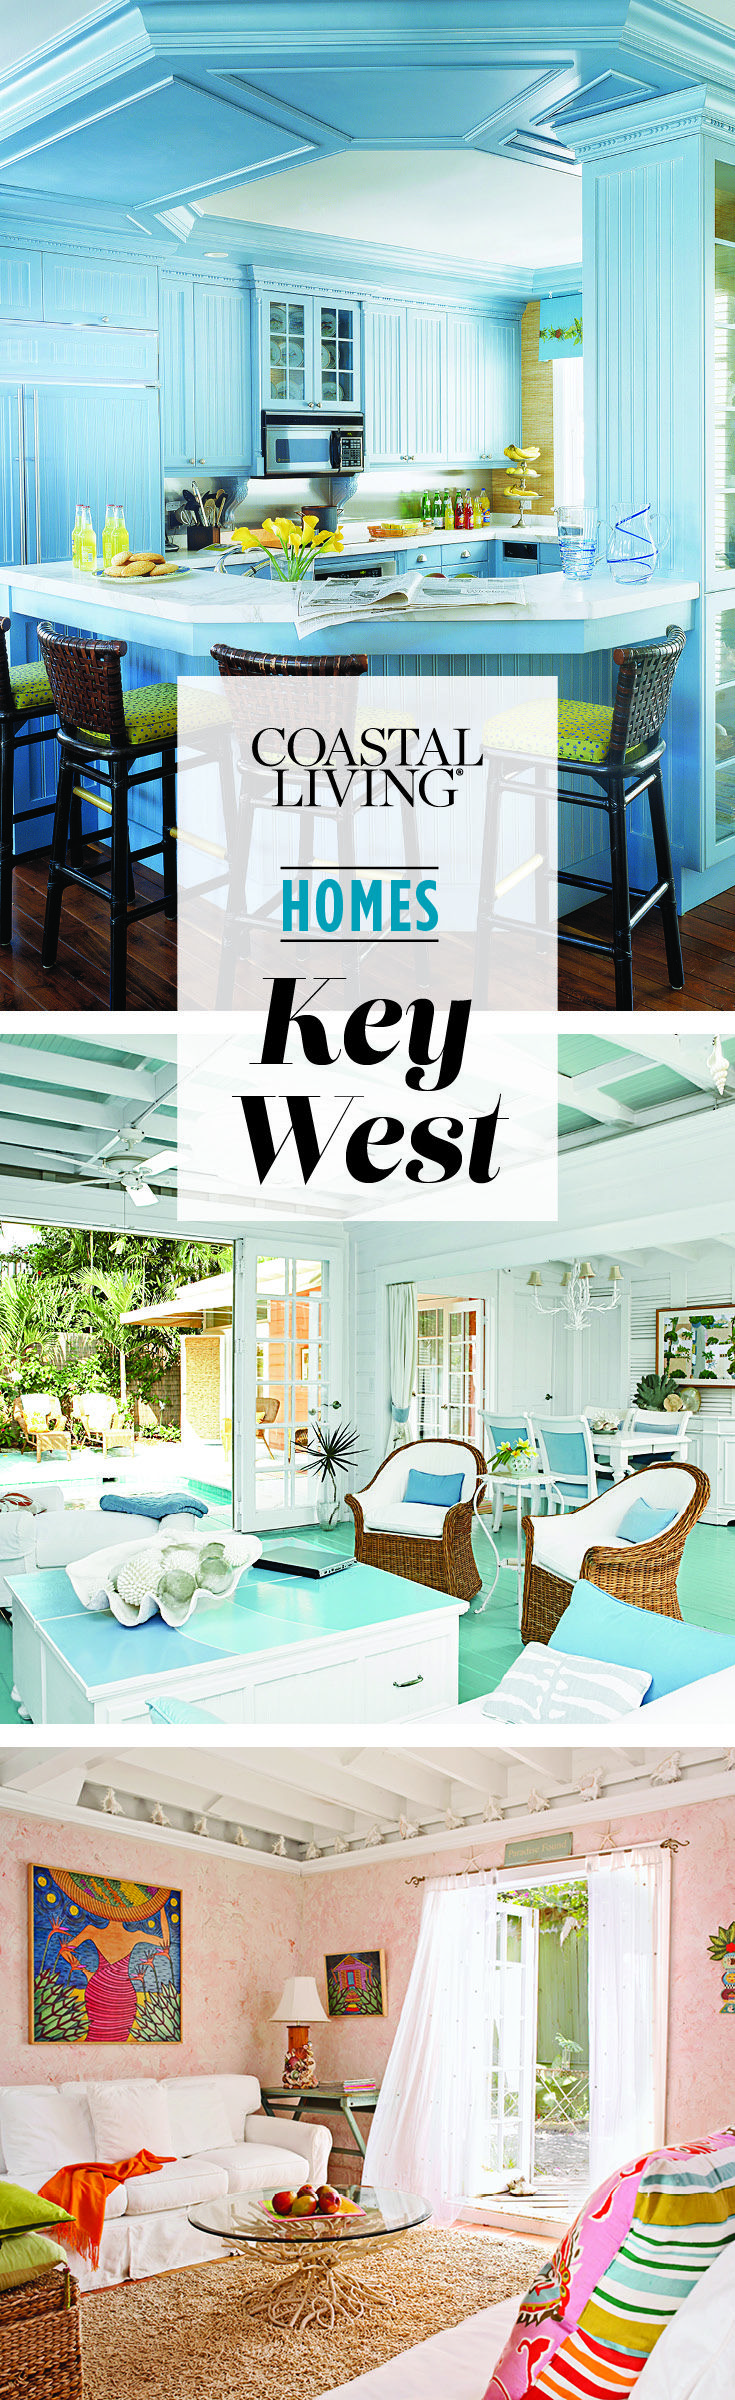 Get that laid-back, Florida look with inspiration from these island homes.